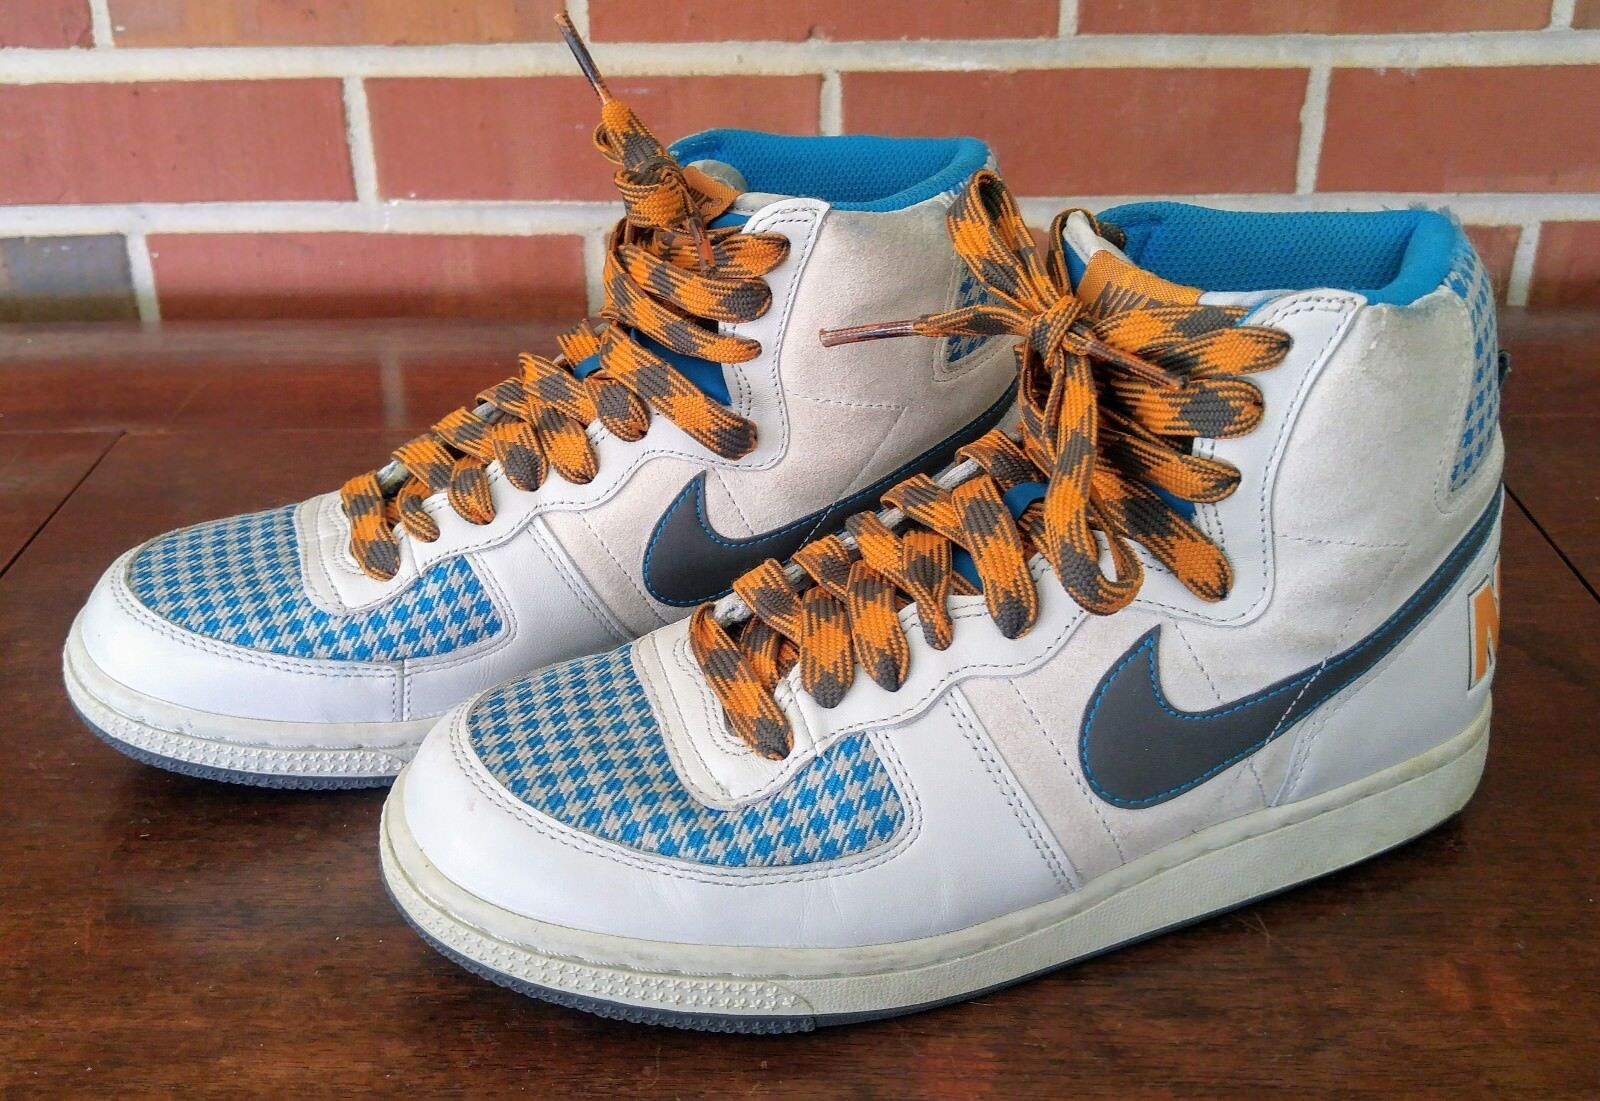 Nike Terminator High Top 310066-001 shoes Womens Size 7.5